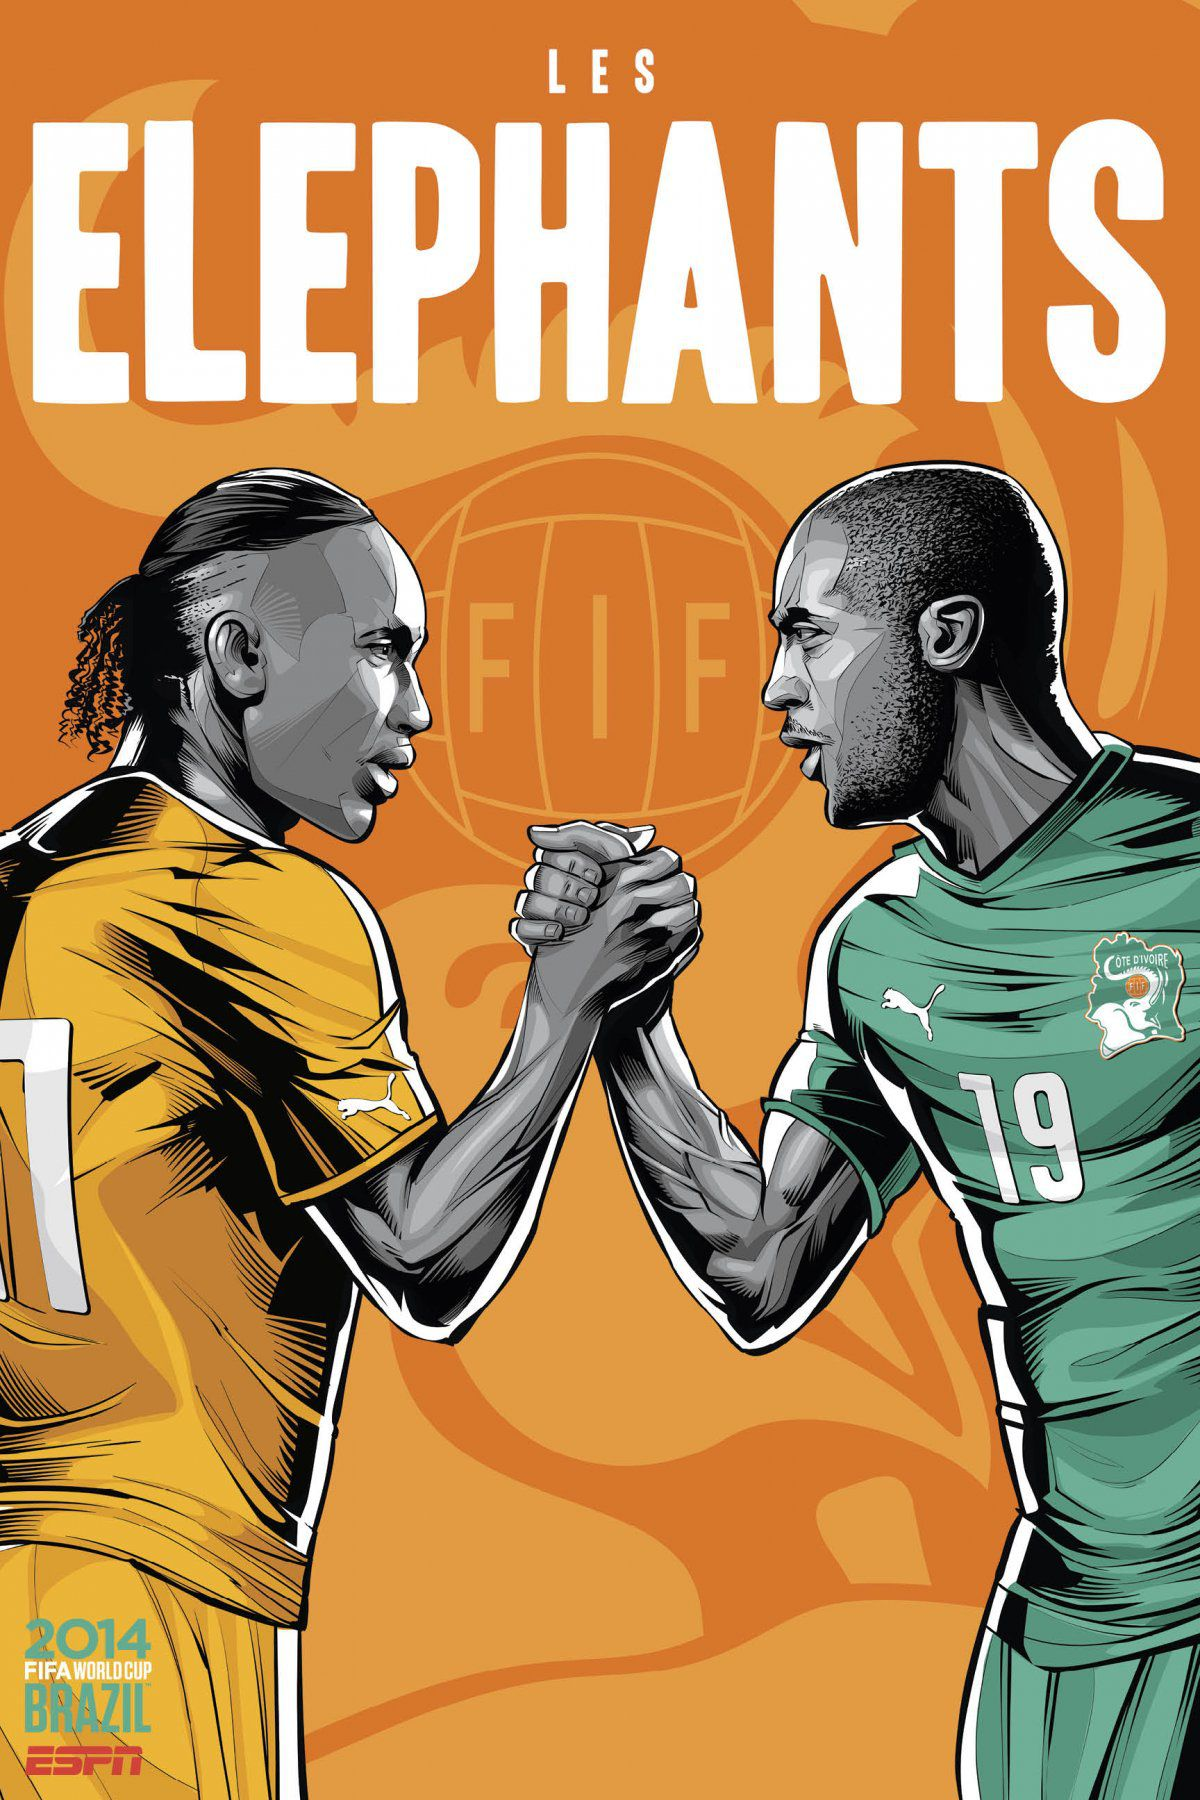 ESPN poster world cup brazil 2014 of Ivory Coast